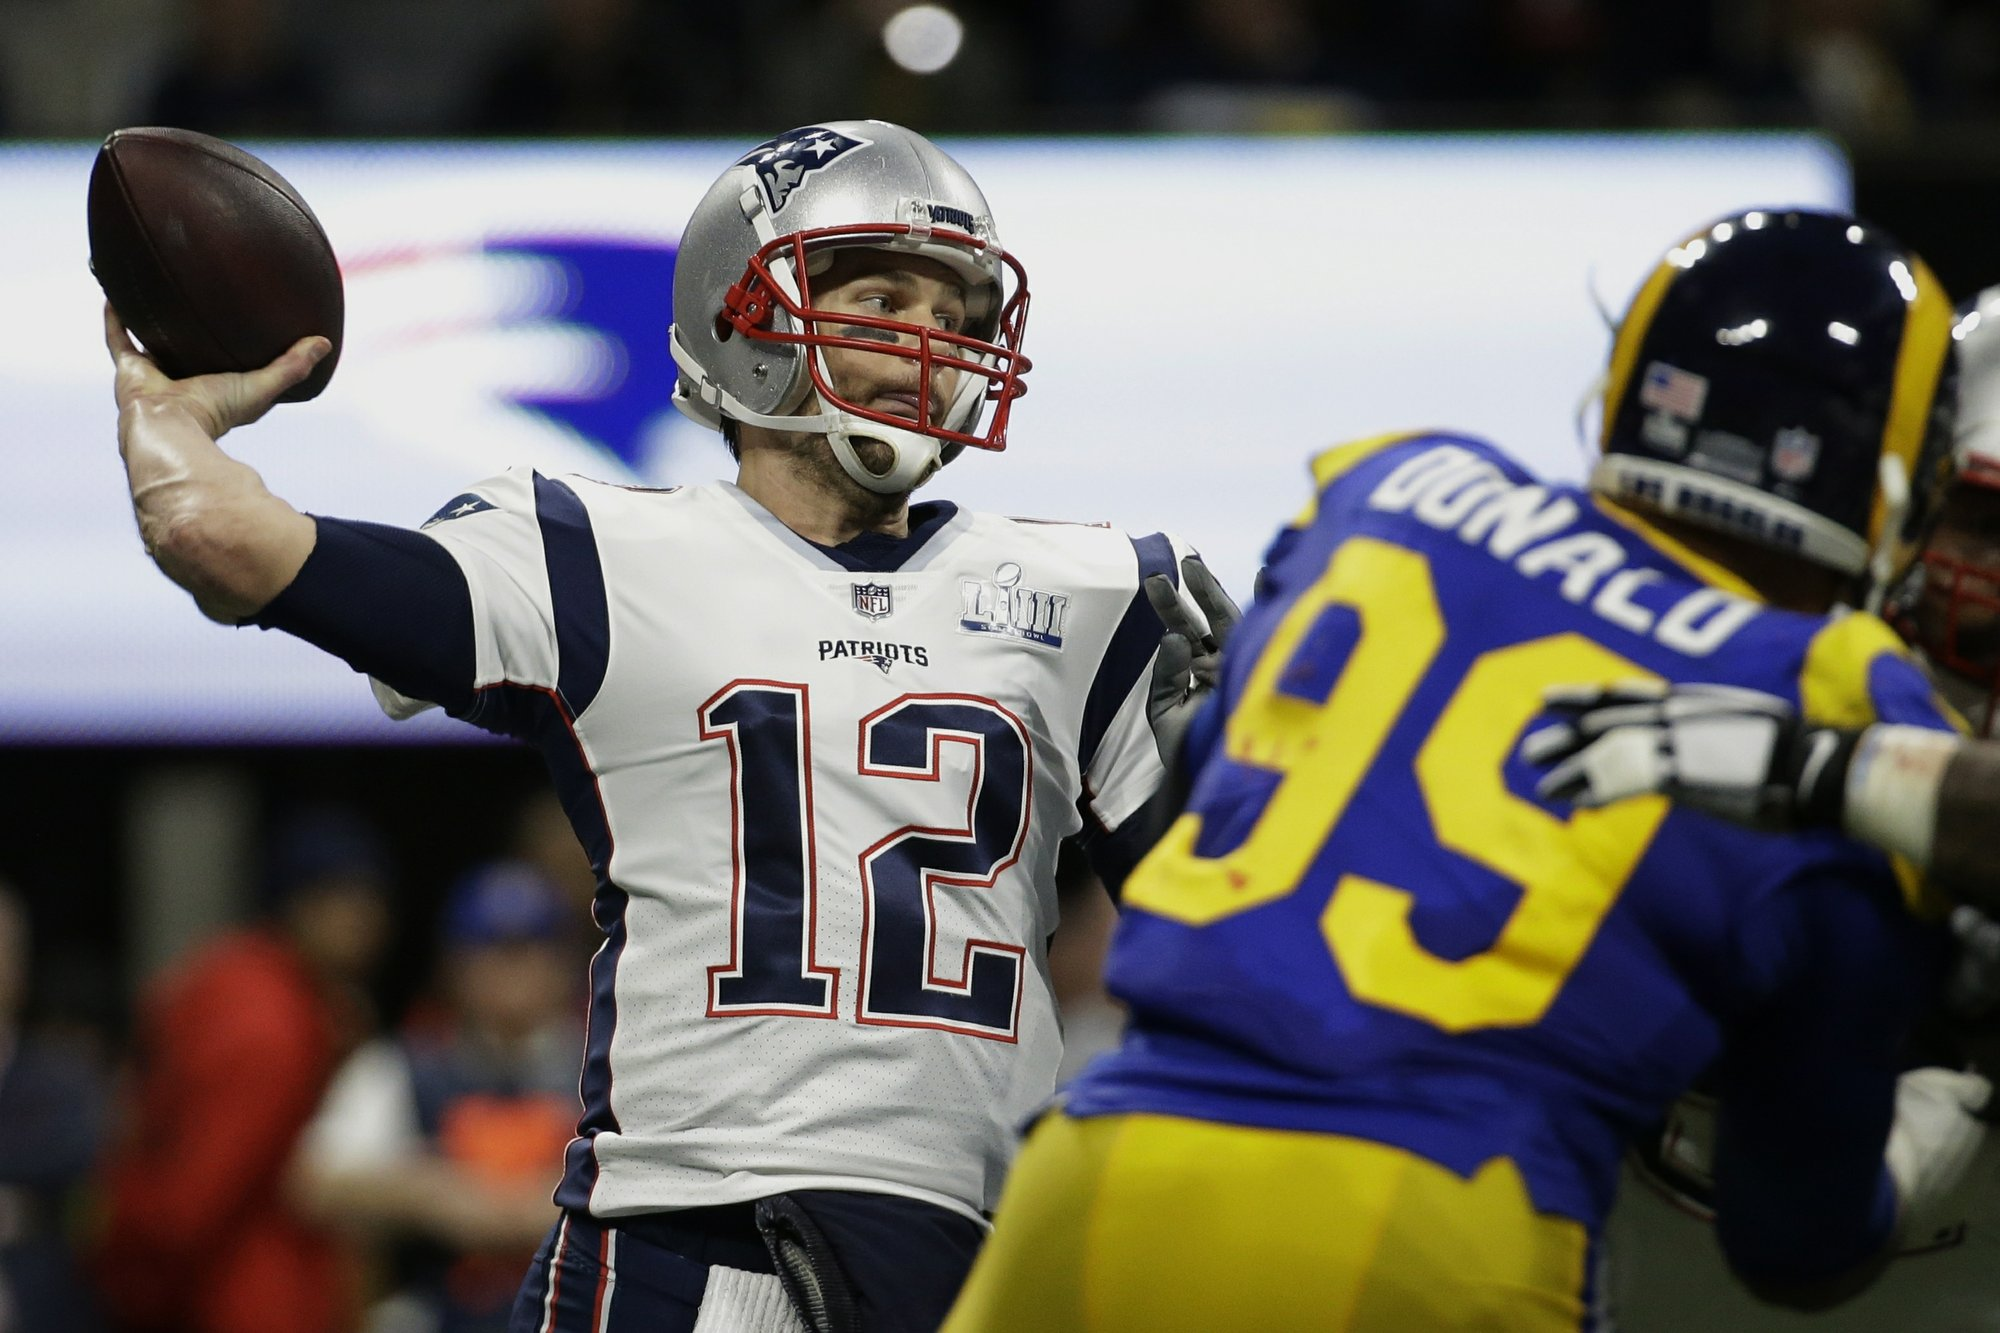 Brady merely average, but good enough for championship No. 6